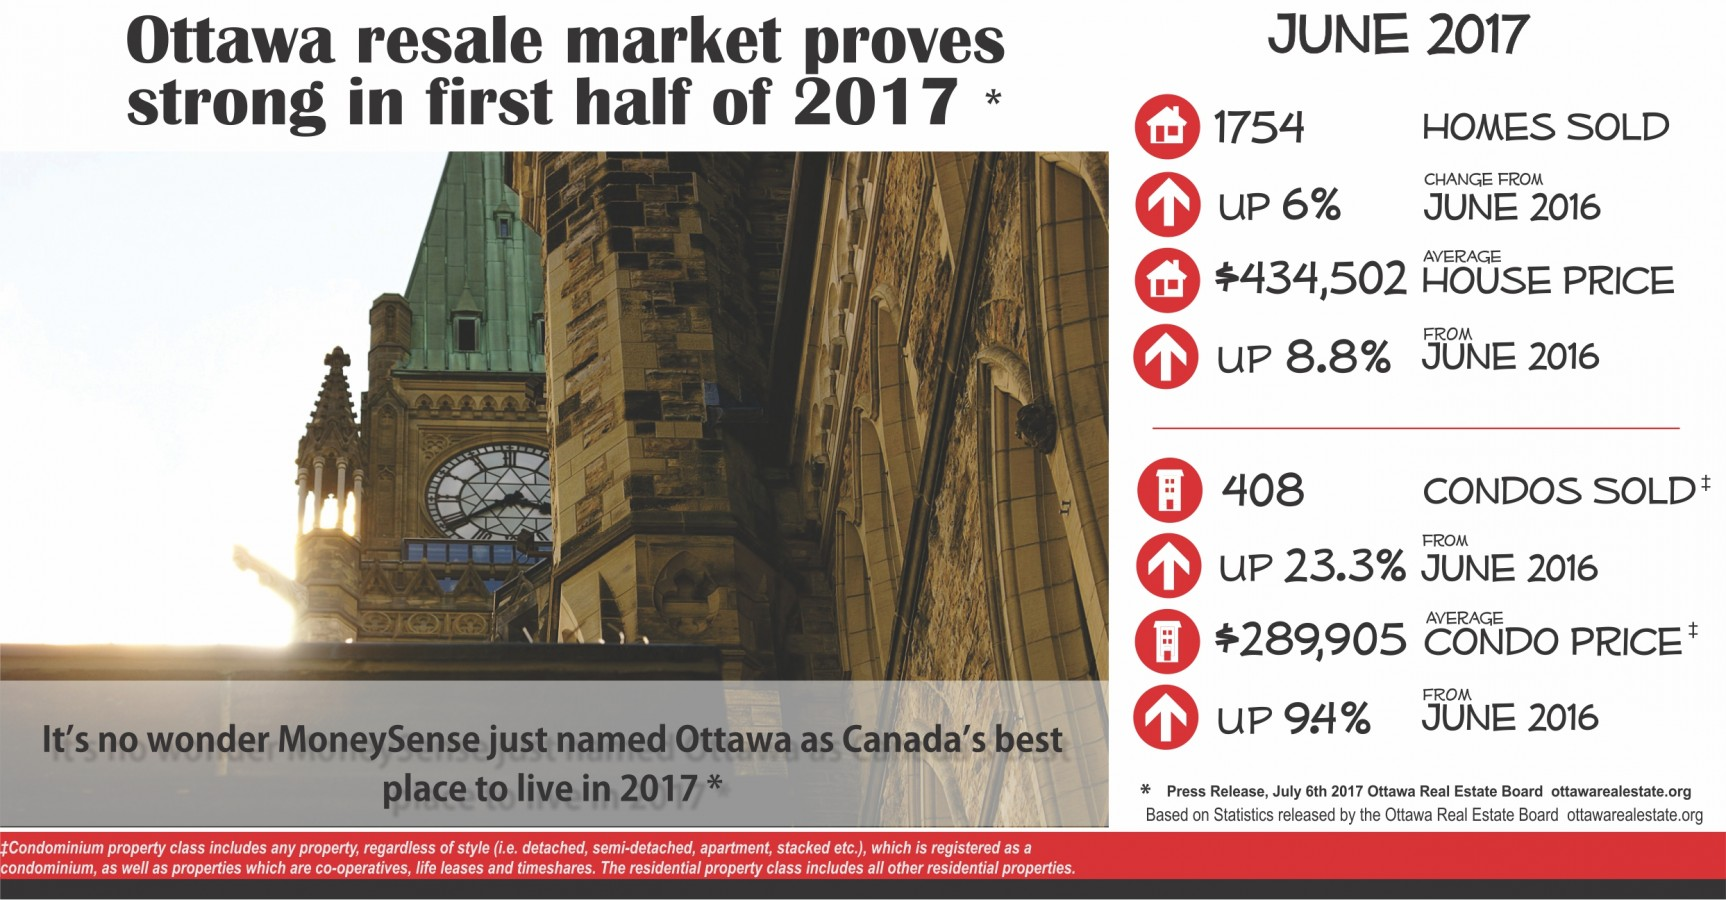 Ottawa Generic July card with June Stats 2017